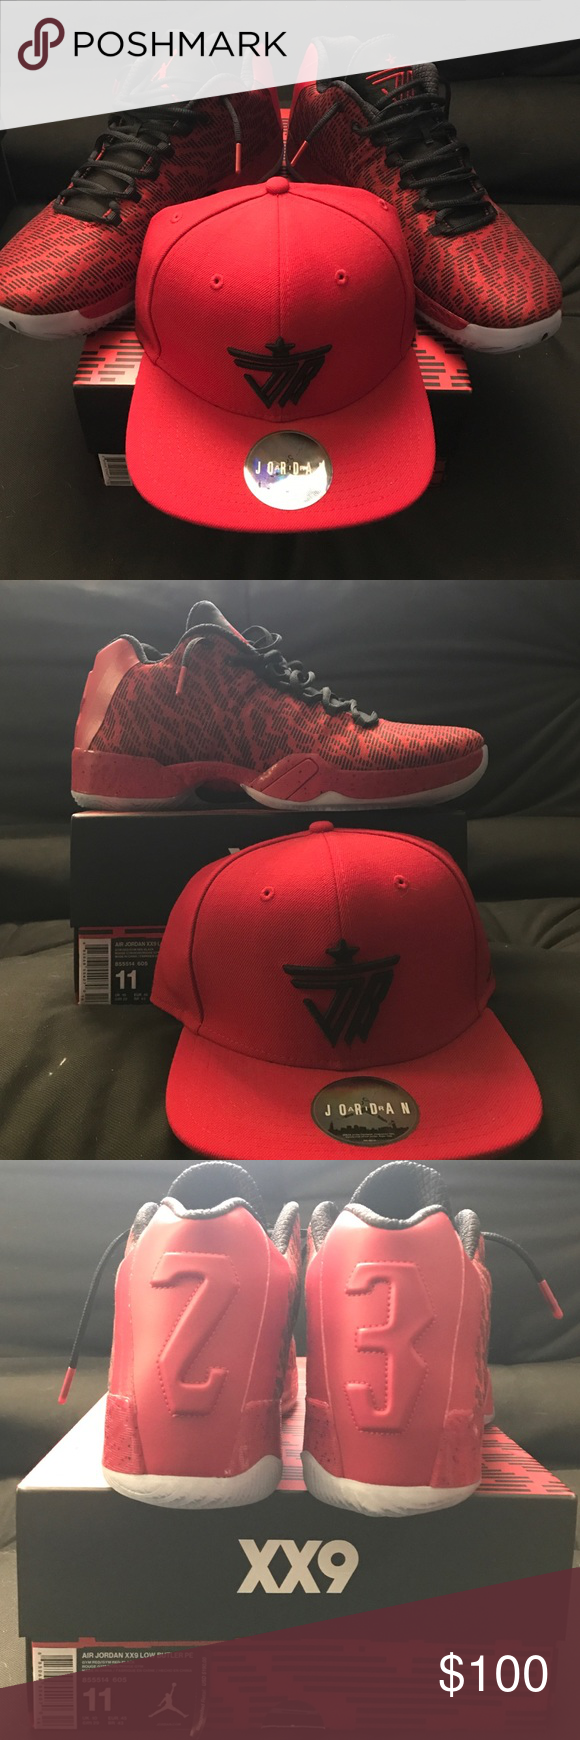 low priced 38af8 affb6 Jordan XX9 Low Jimmy Butler PE size 11 Never Worn For Sale ...